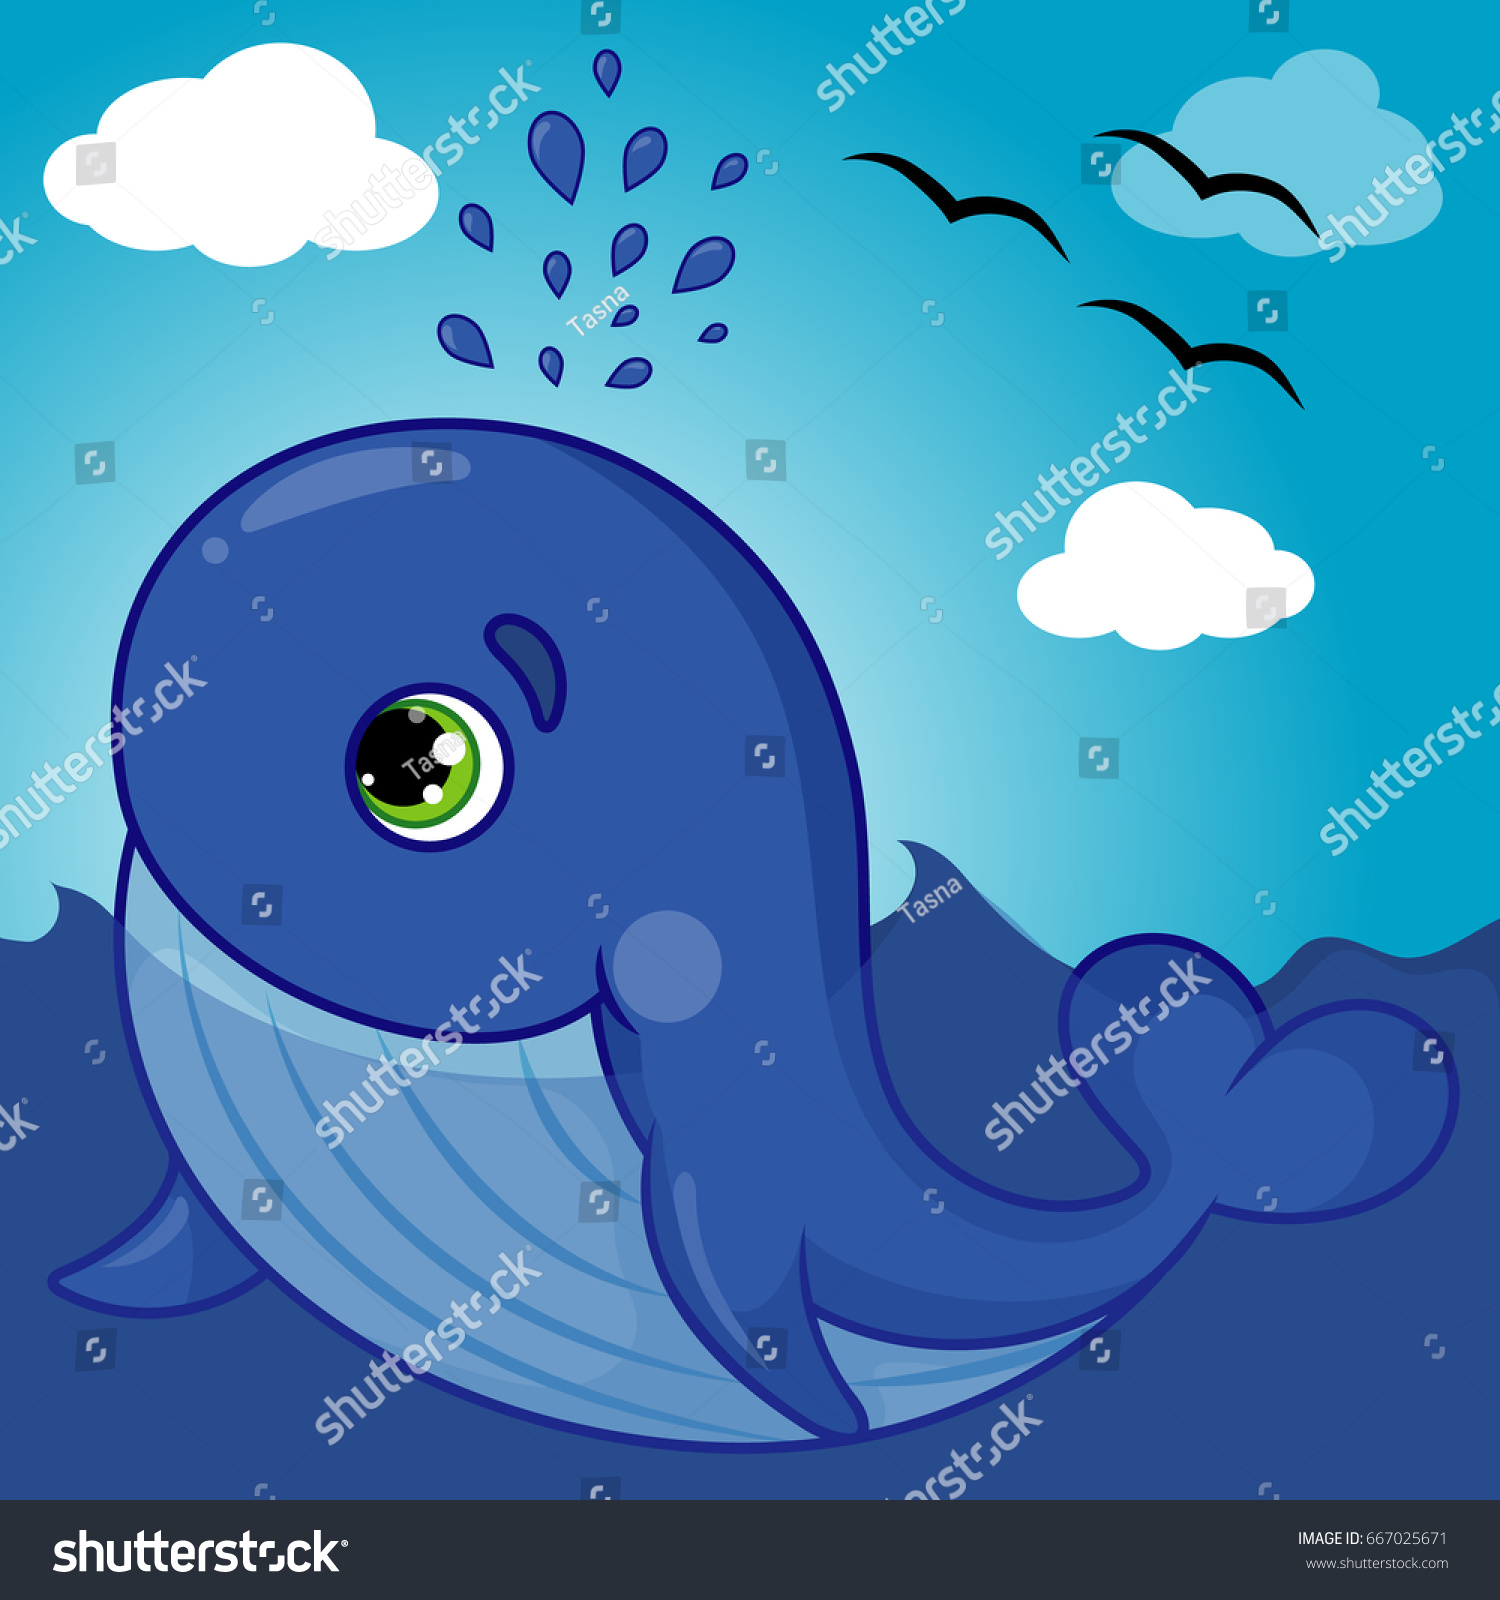 Cute whale in water cartoon isolated illustration stock photography - Cute Whale Character Smiling With Water Fountain Blow Cartoon Hand Drawn Vector Illustration Eps 10